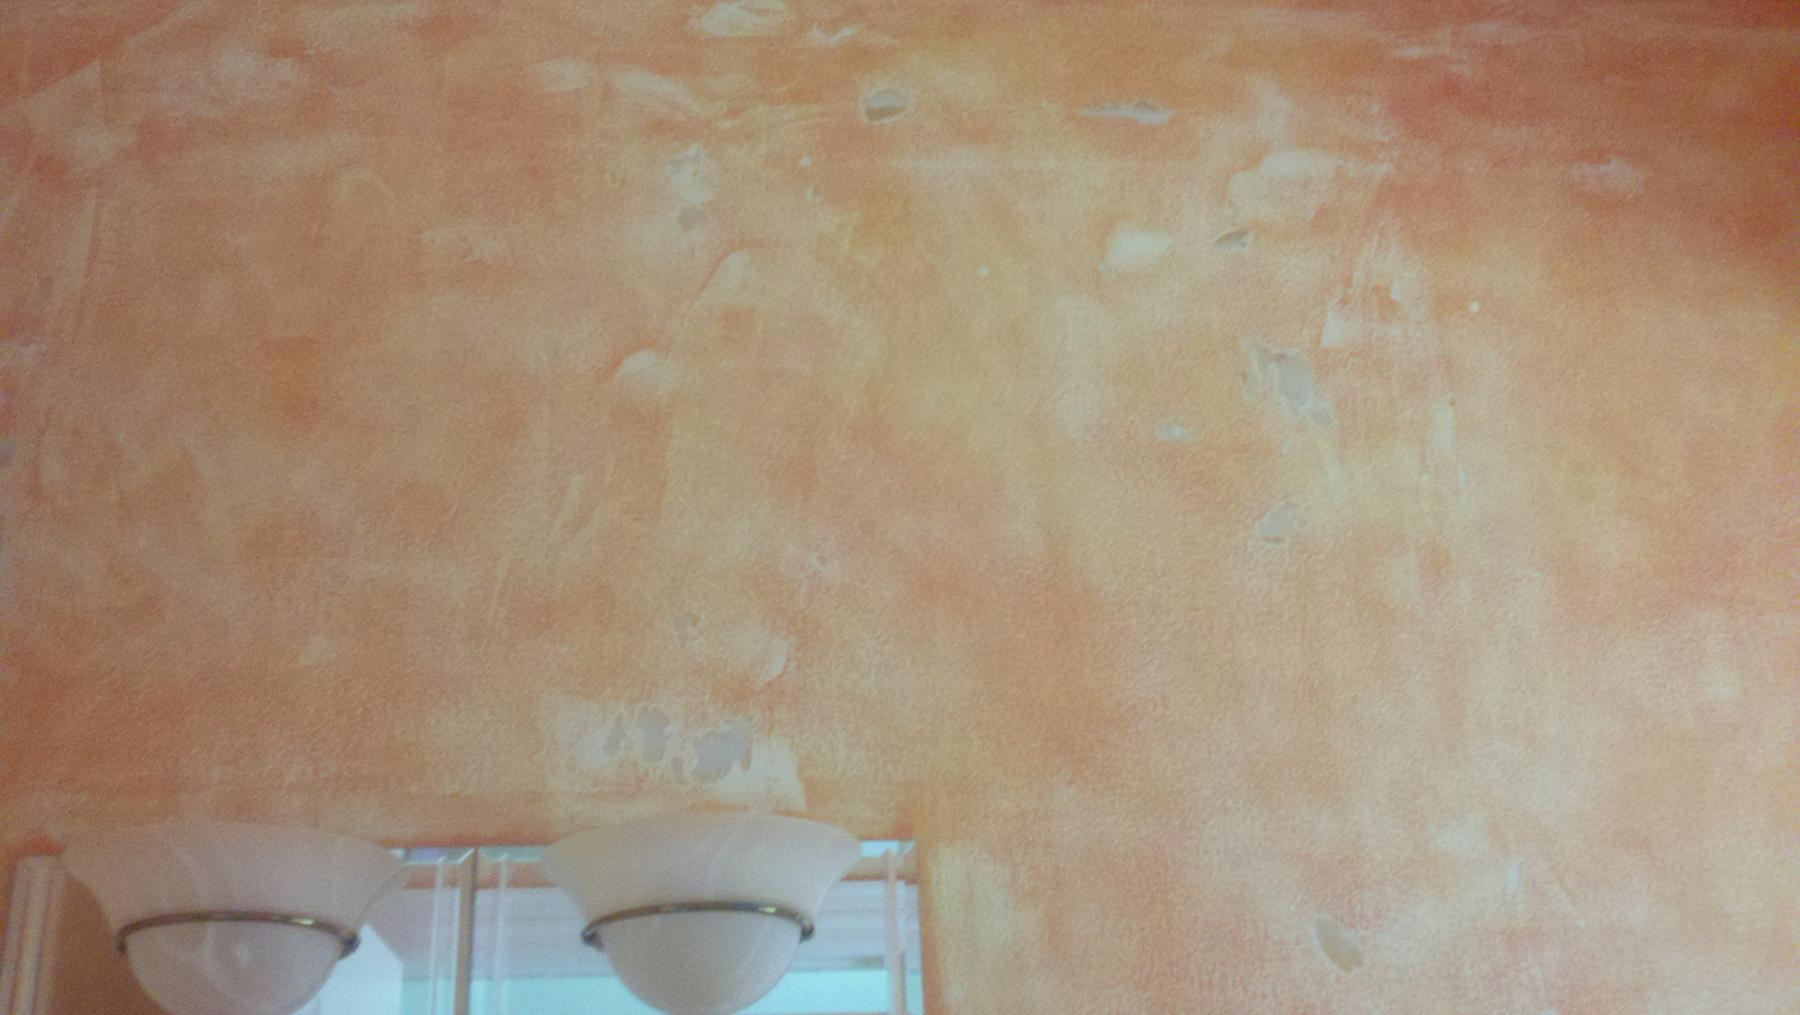 How to remove wallpaper paste from sheetrock - Download Removing Wallpaper Glue Residue Gallery